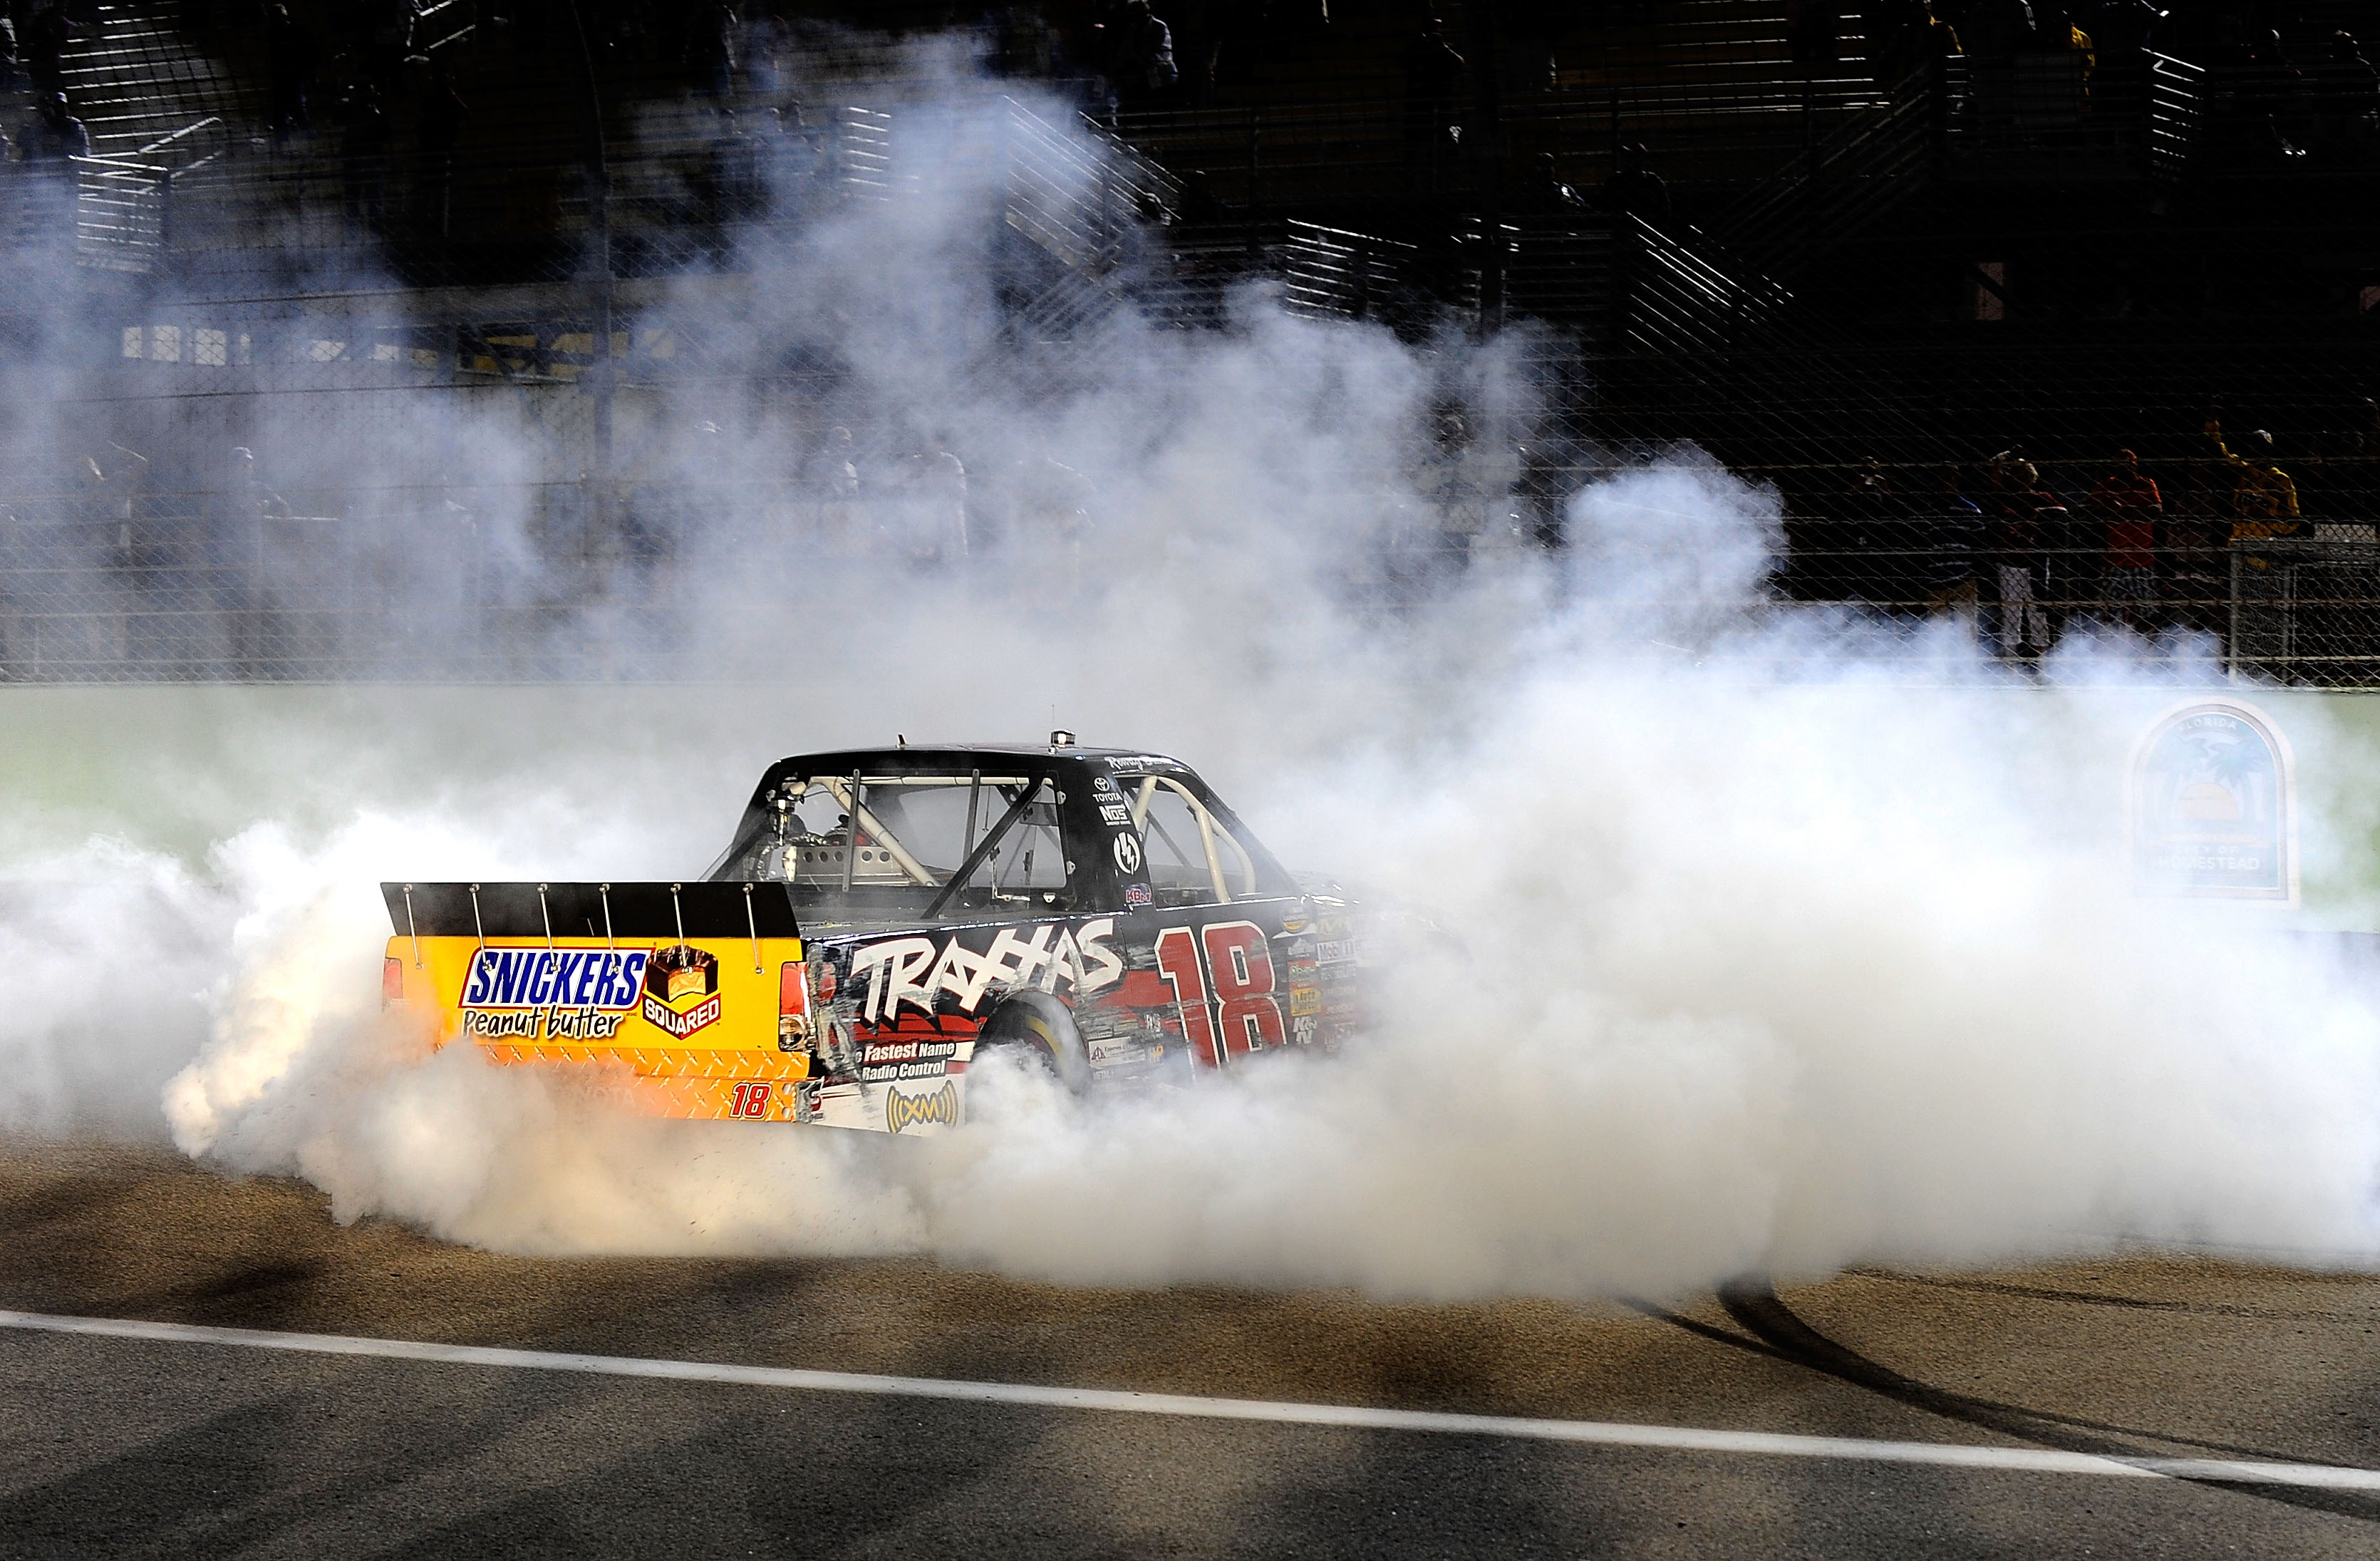 HOMESTEAD, FL - NOVEMBER 19:  Kyle Busch, driver of the #18 Toyota Tundra/TRAXXAS Toyota, celebrates with a burnout after winning the NASCAR Camping World Truck Series Ford 200 at Homestead-Miami Speedway on November 19, 2010 in Homestead, Florida.  (Phot